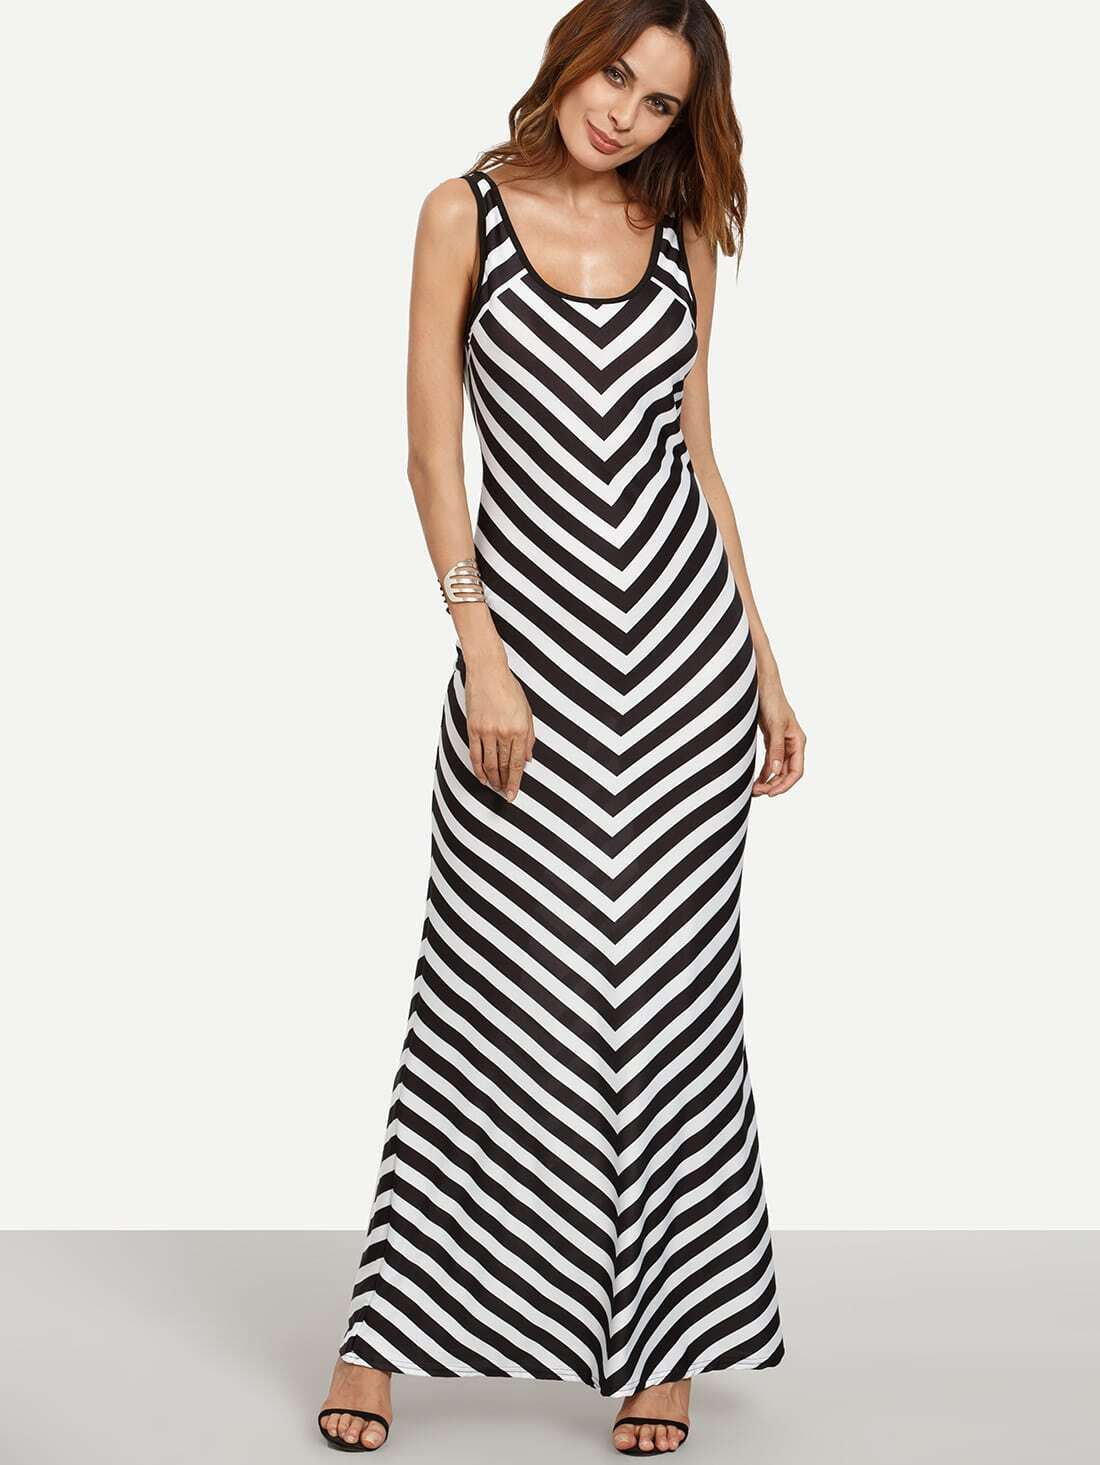 Summer is right around the corner, so now is the time to choose a good women's maxi dress that can usher you through the copious parties and other summertime gatherings during the .